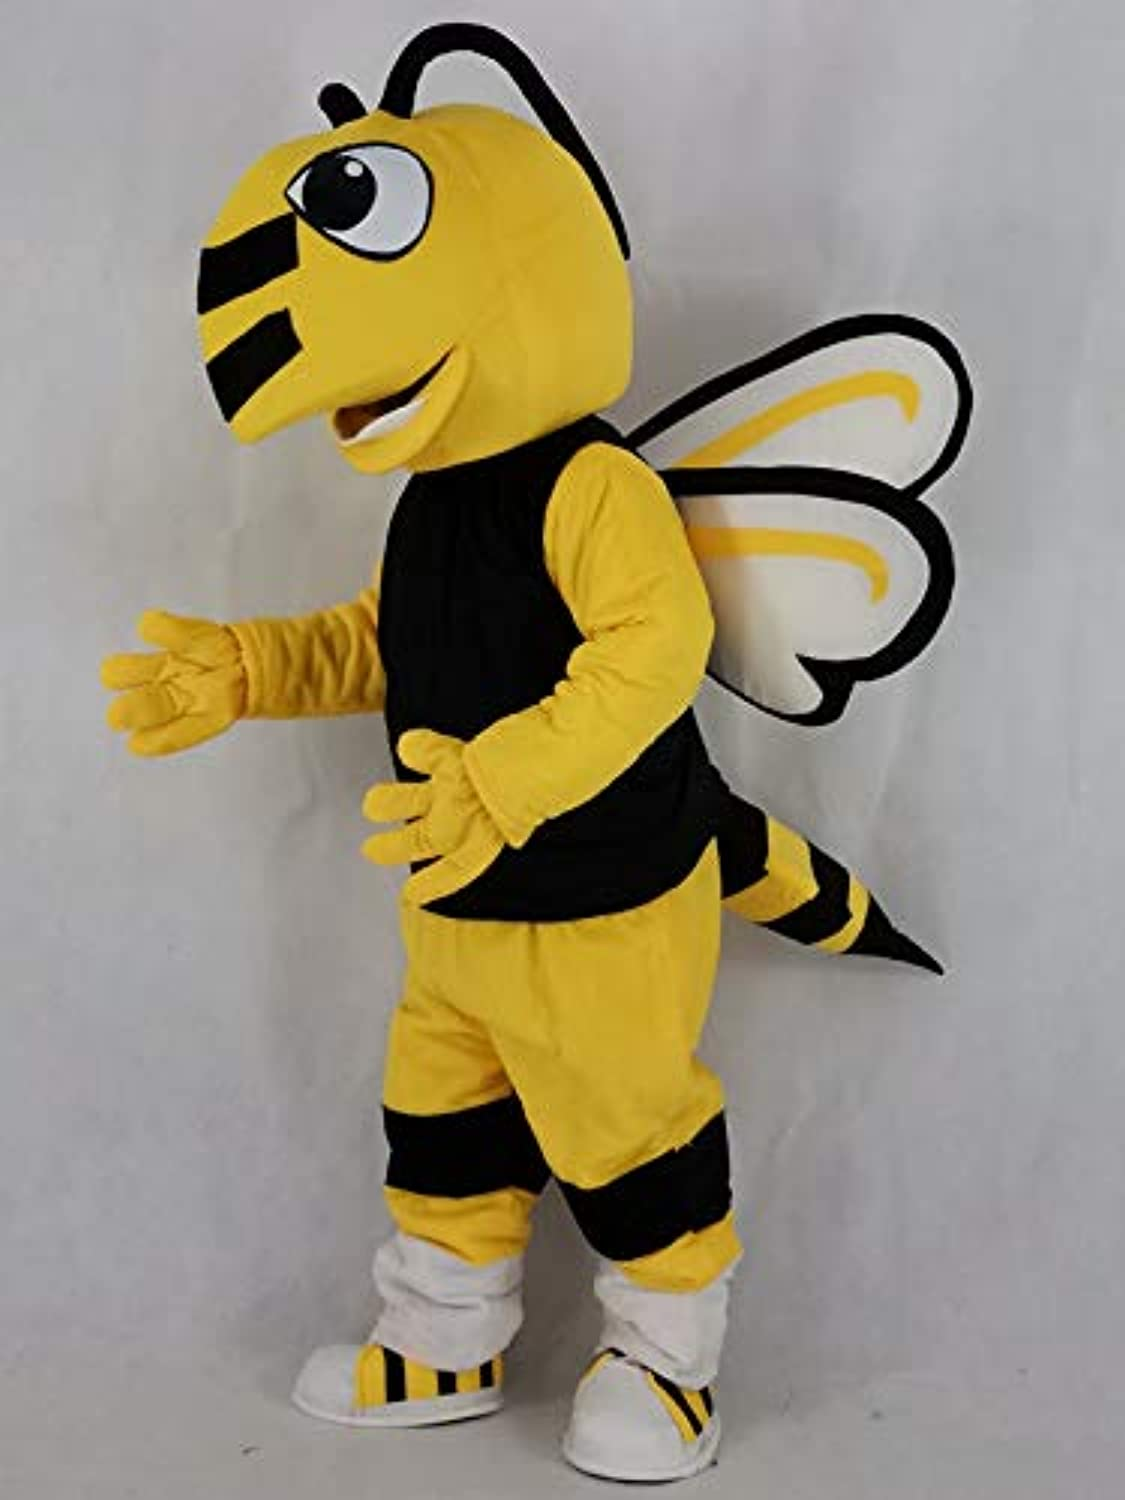 Rushopn Bumble Bee Bumblebee Mascot Costumes Insect